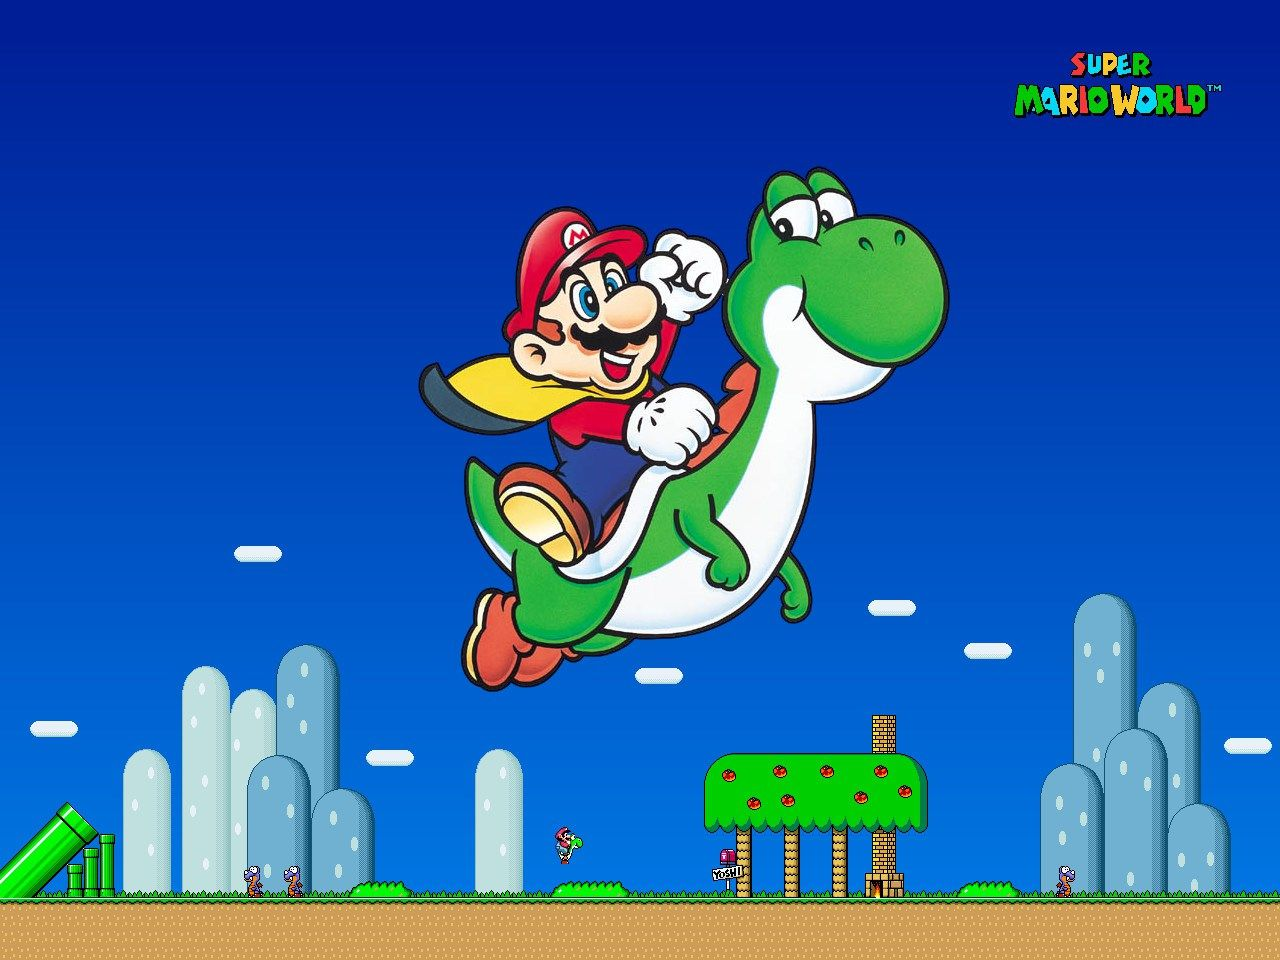 Download Super Mario World Snes Rom 100 Working Android Apk S